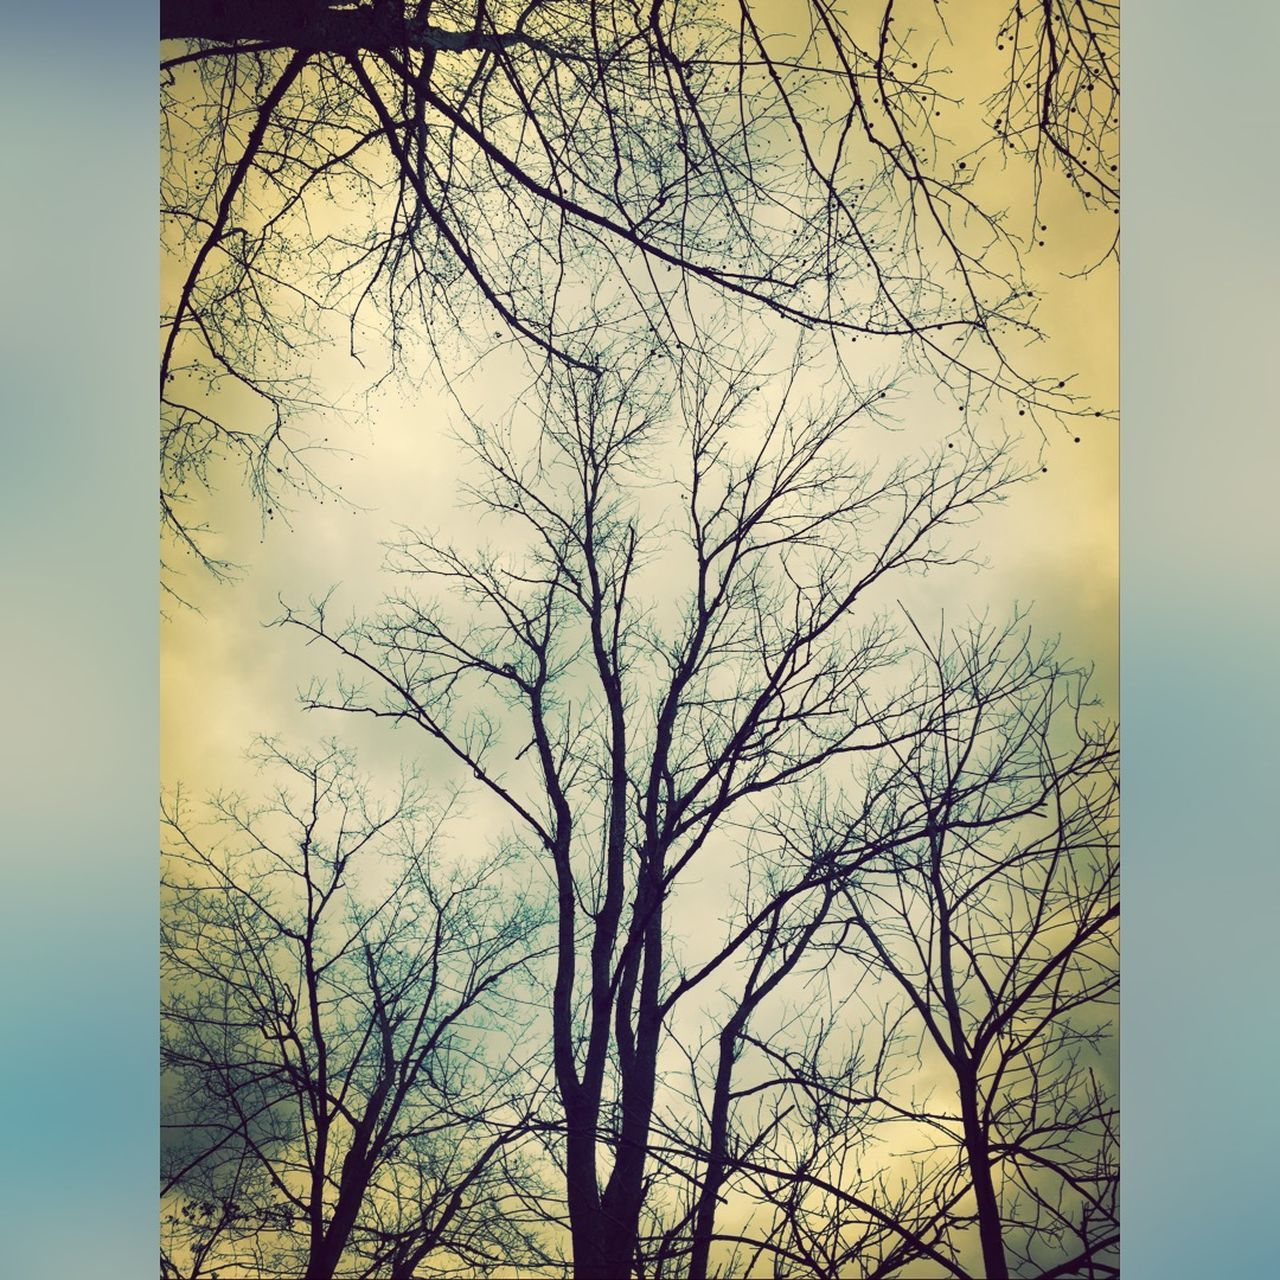 bare tree, tree, branch, no people, sky, nature, tree trunk, outdoors, low angle view, day, beauty in nature